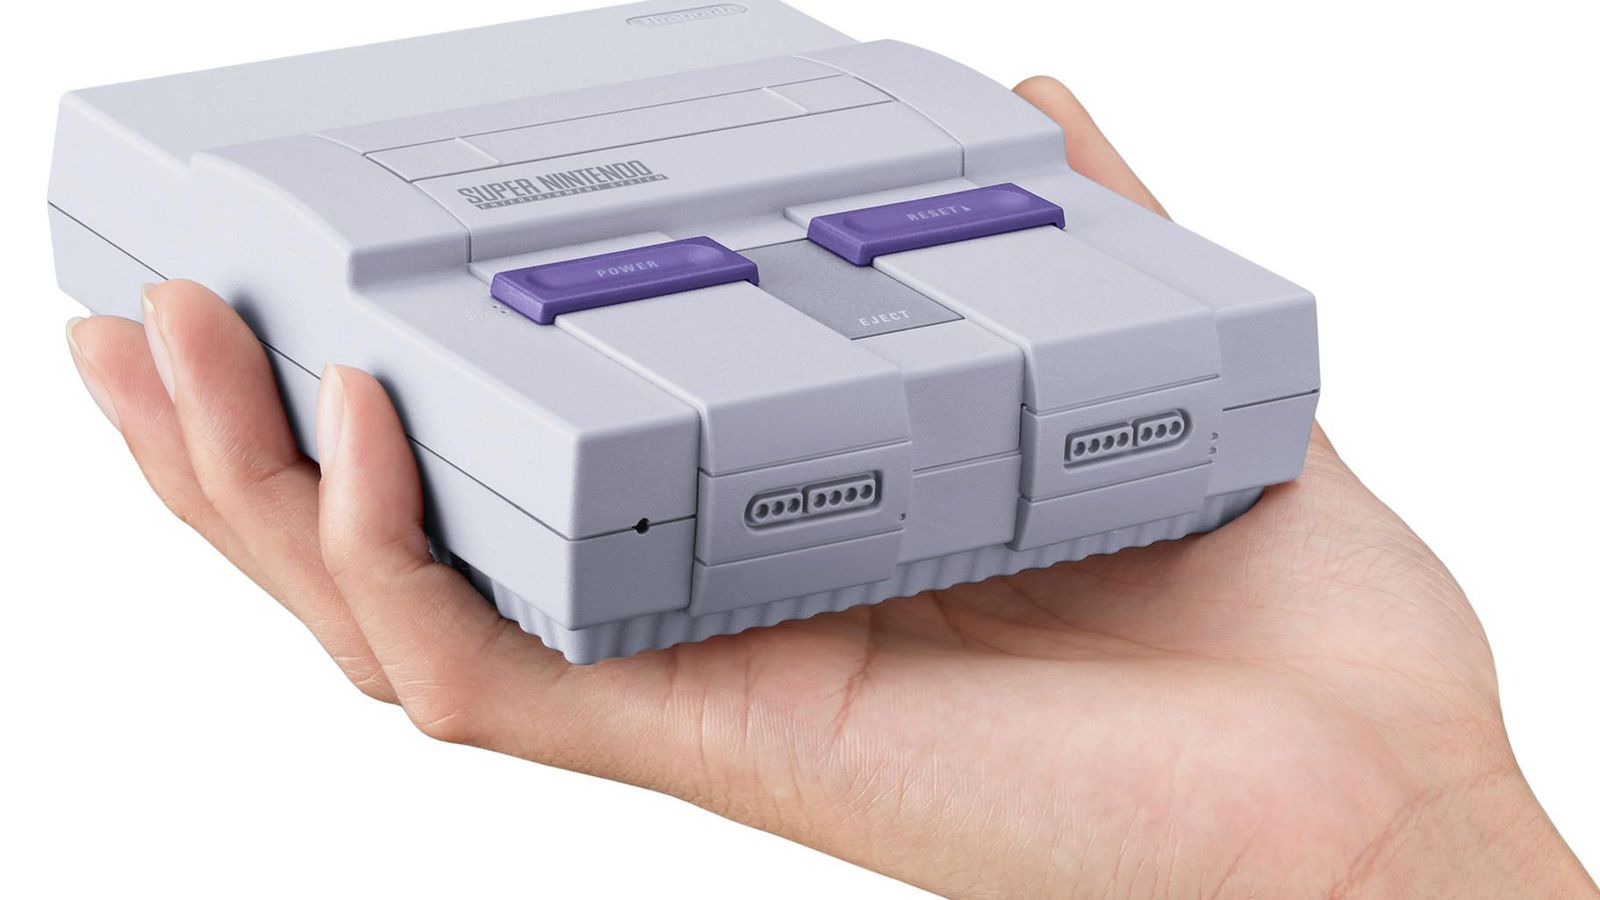 a nintendo snes classic being held against a white background